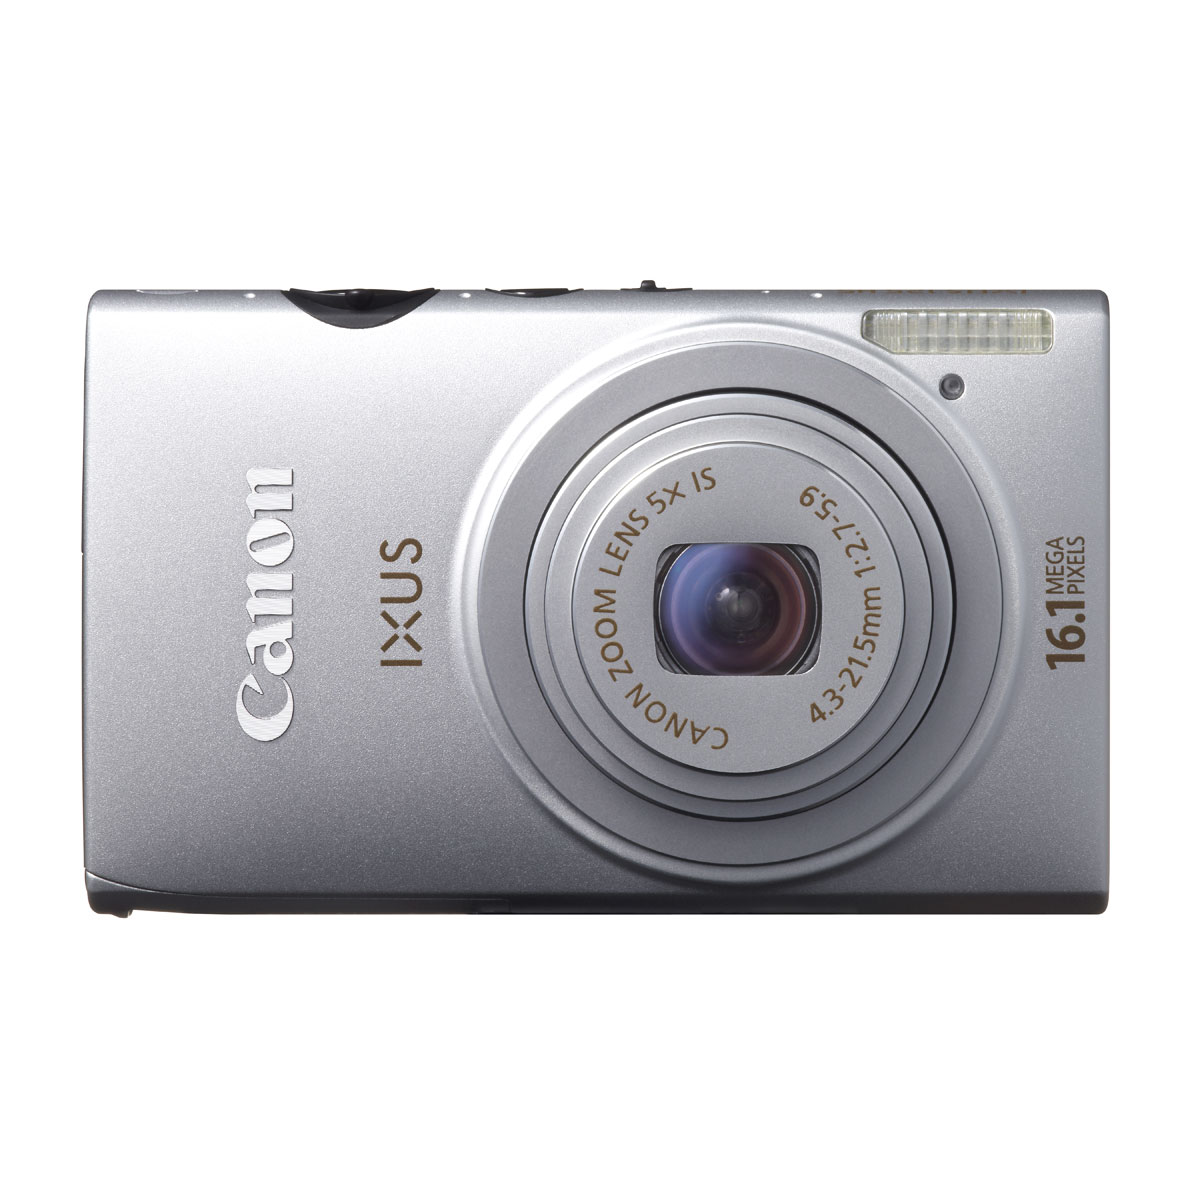 canon ixus 125 hs argent appareil photo num rique canon sur. Black Bedroom Furniture Sets. Home Design Ideas